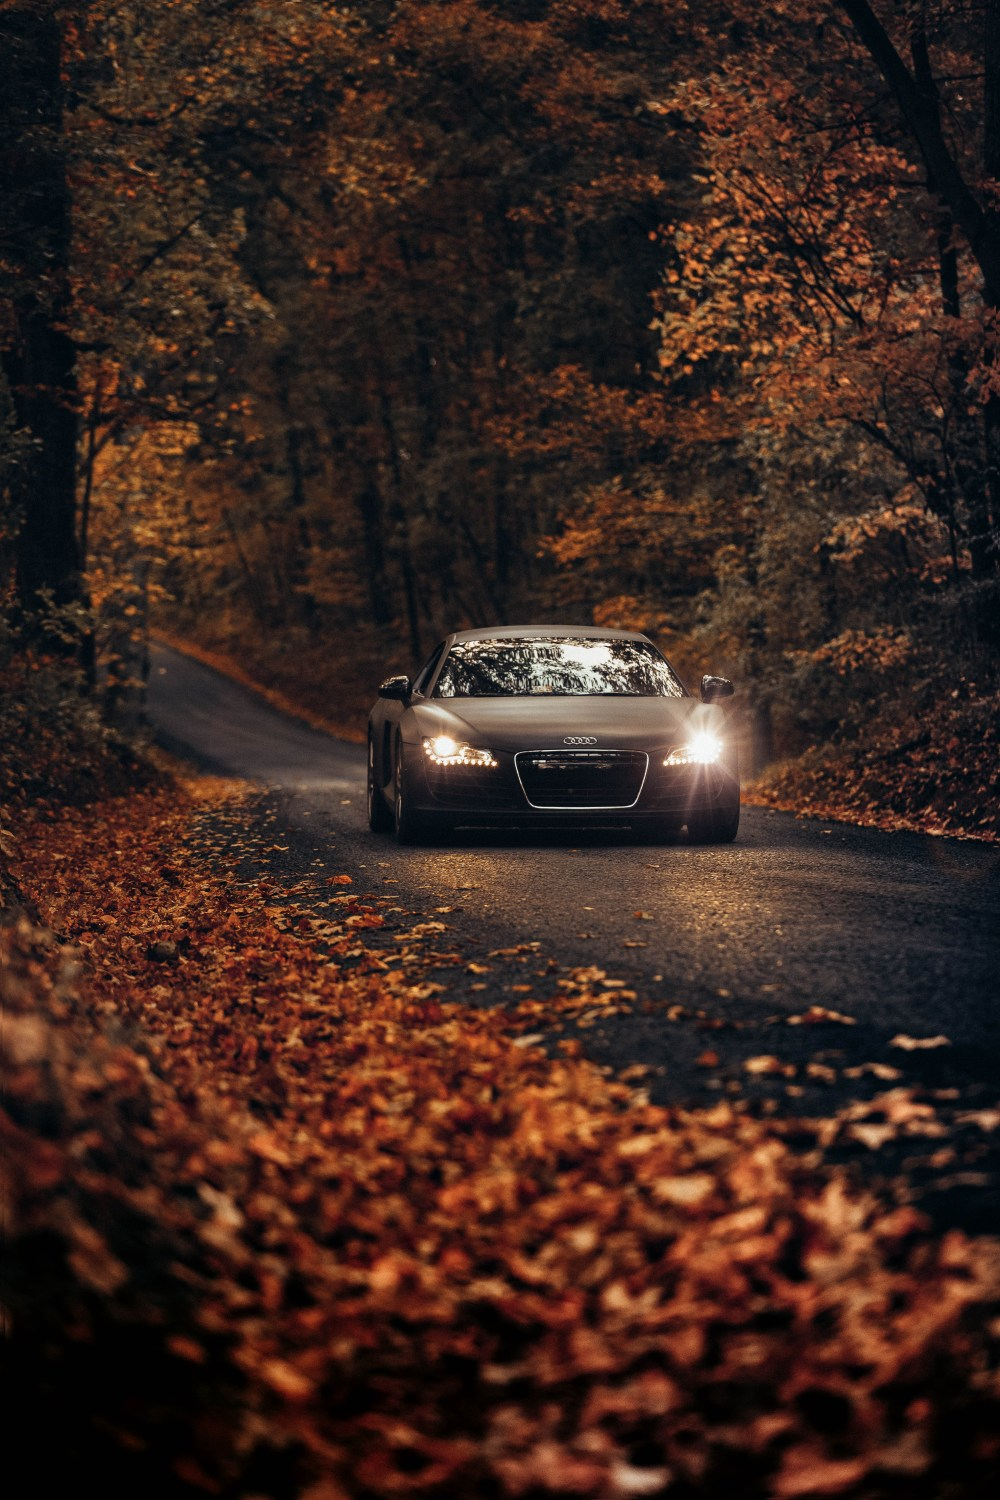 Cars Hd Wallpapers 1080p For Pc Bmw 27 Vehicle Pictures Download Free Images On Unsplash